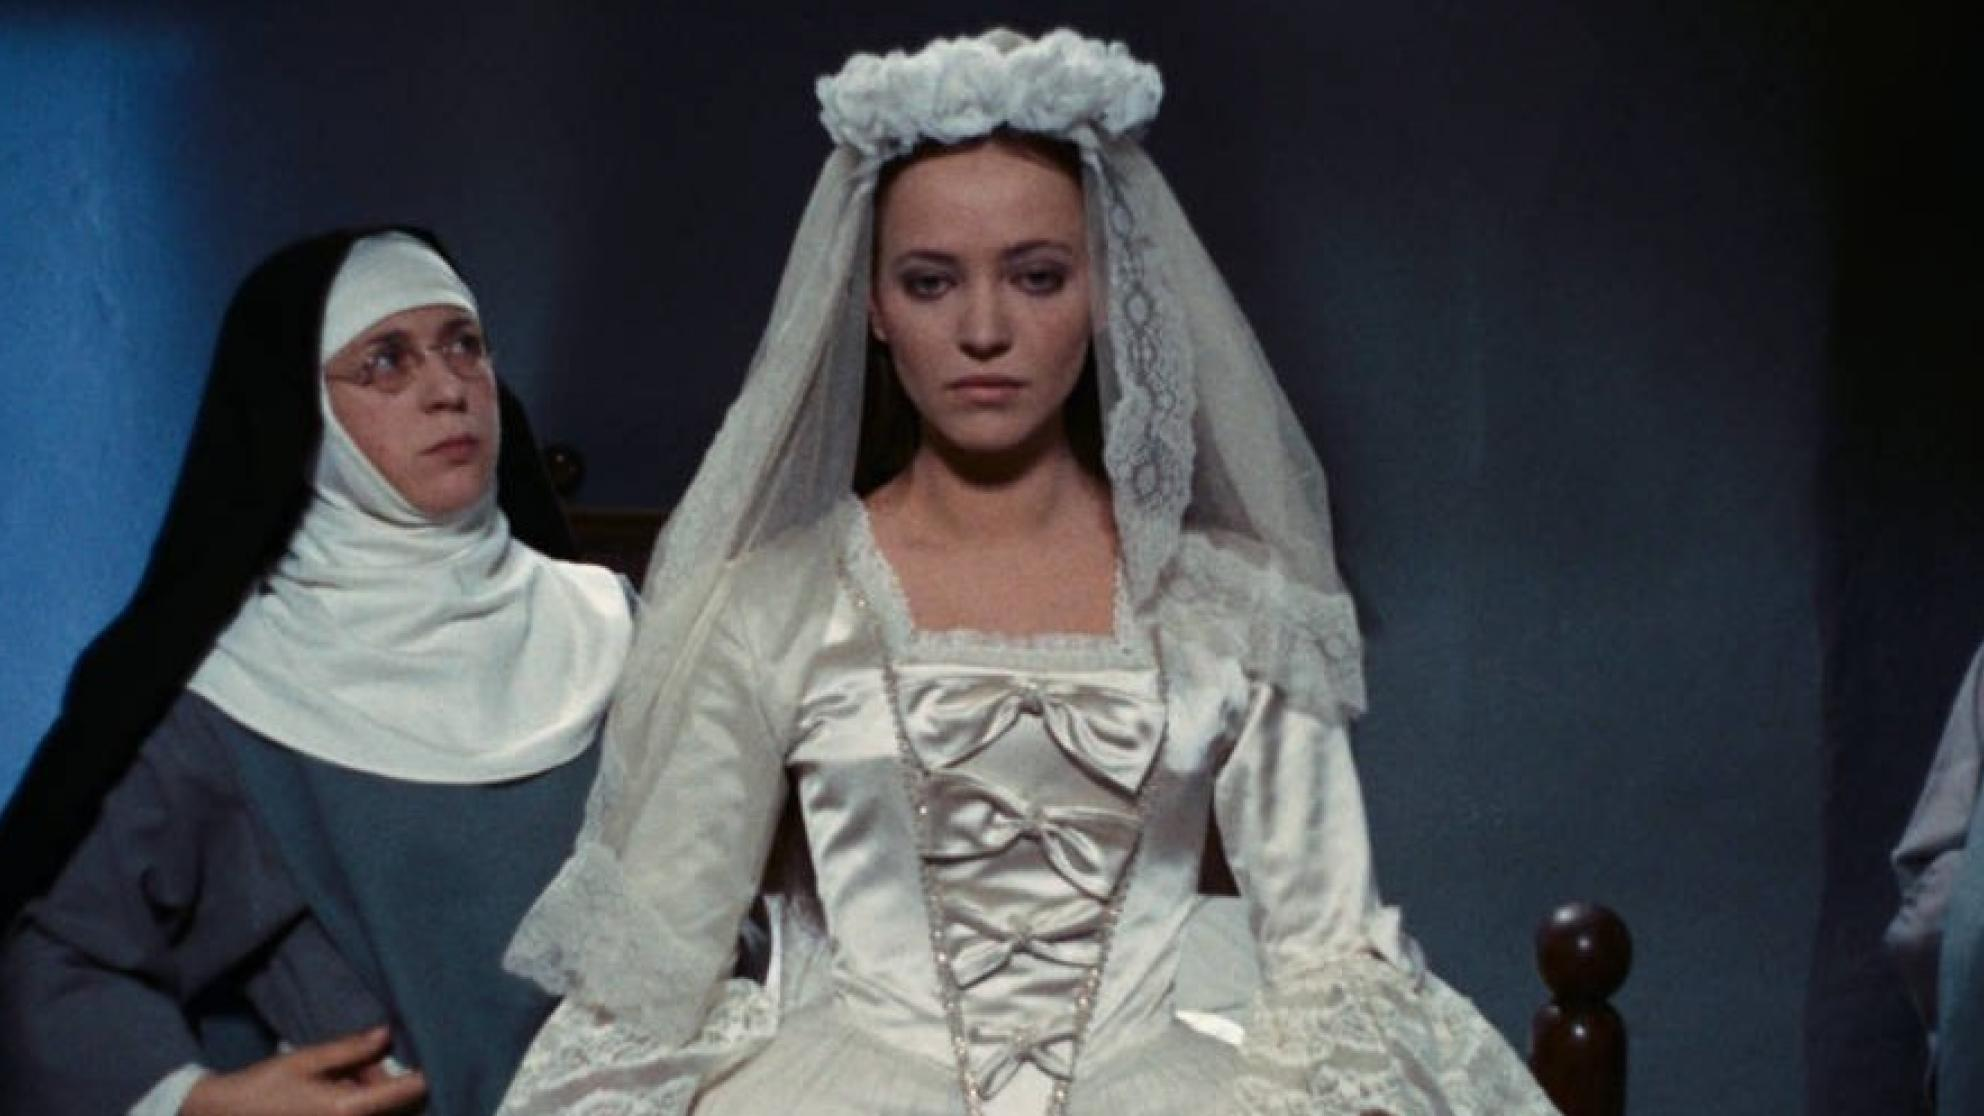 A young woman in a wedding gown stands centre of frame while a nun to her right looks at her intensely